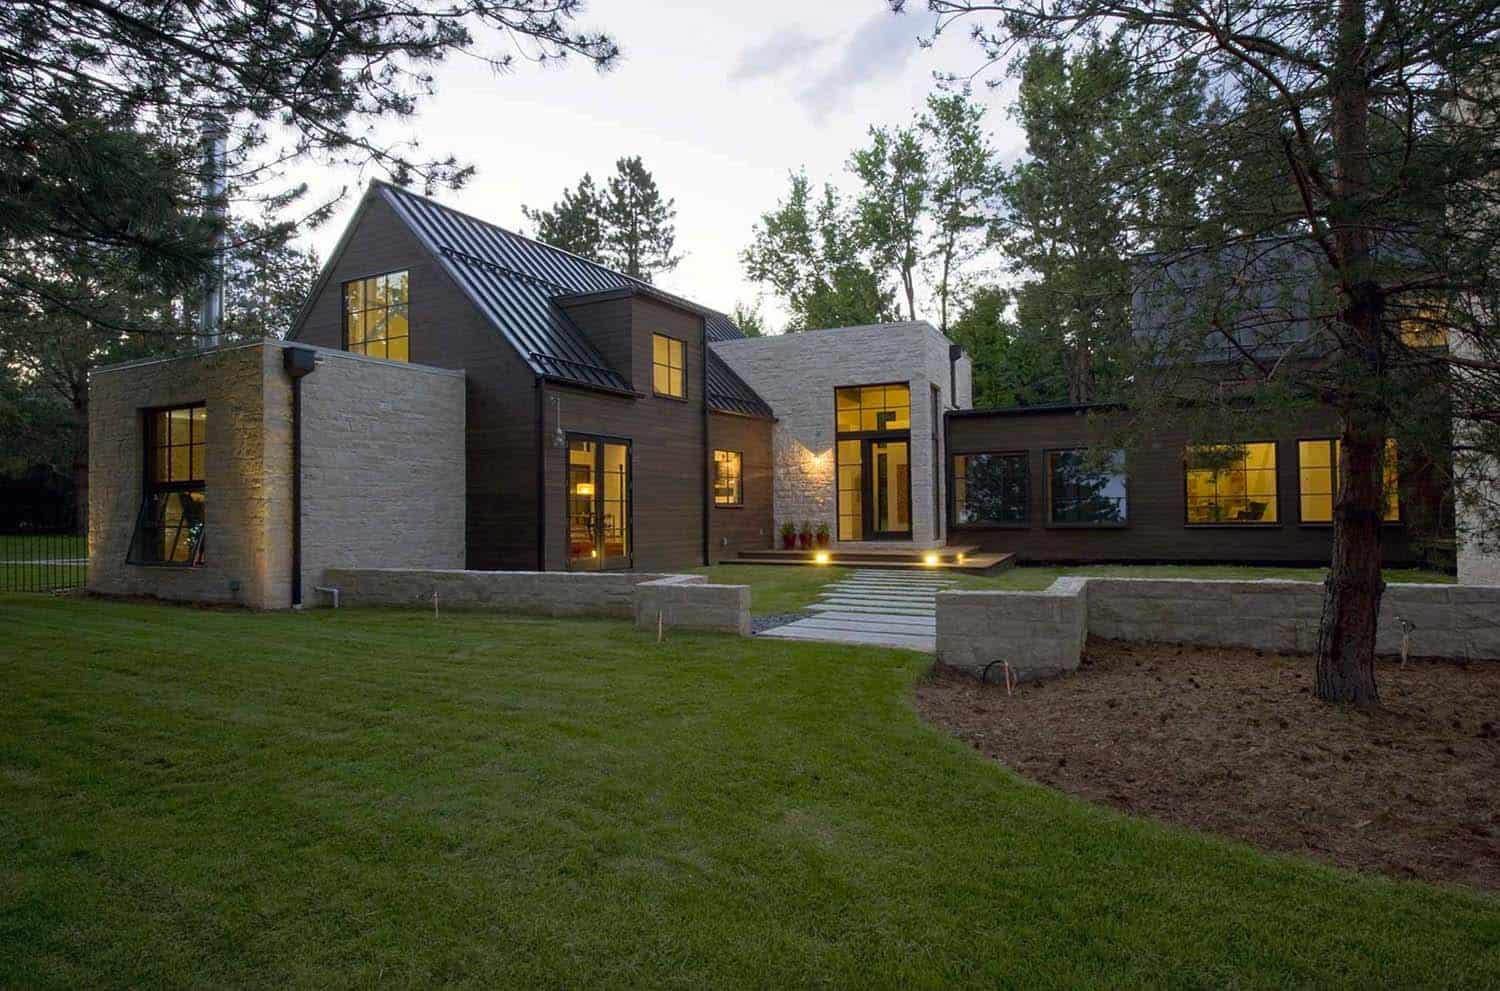 Breathtaking Colorado Home Contemporary Farmhouse Style Details Design